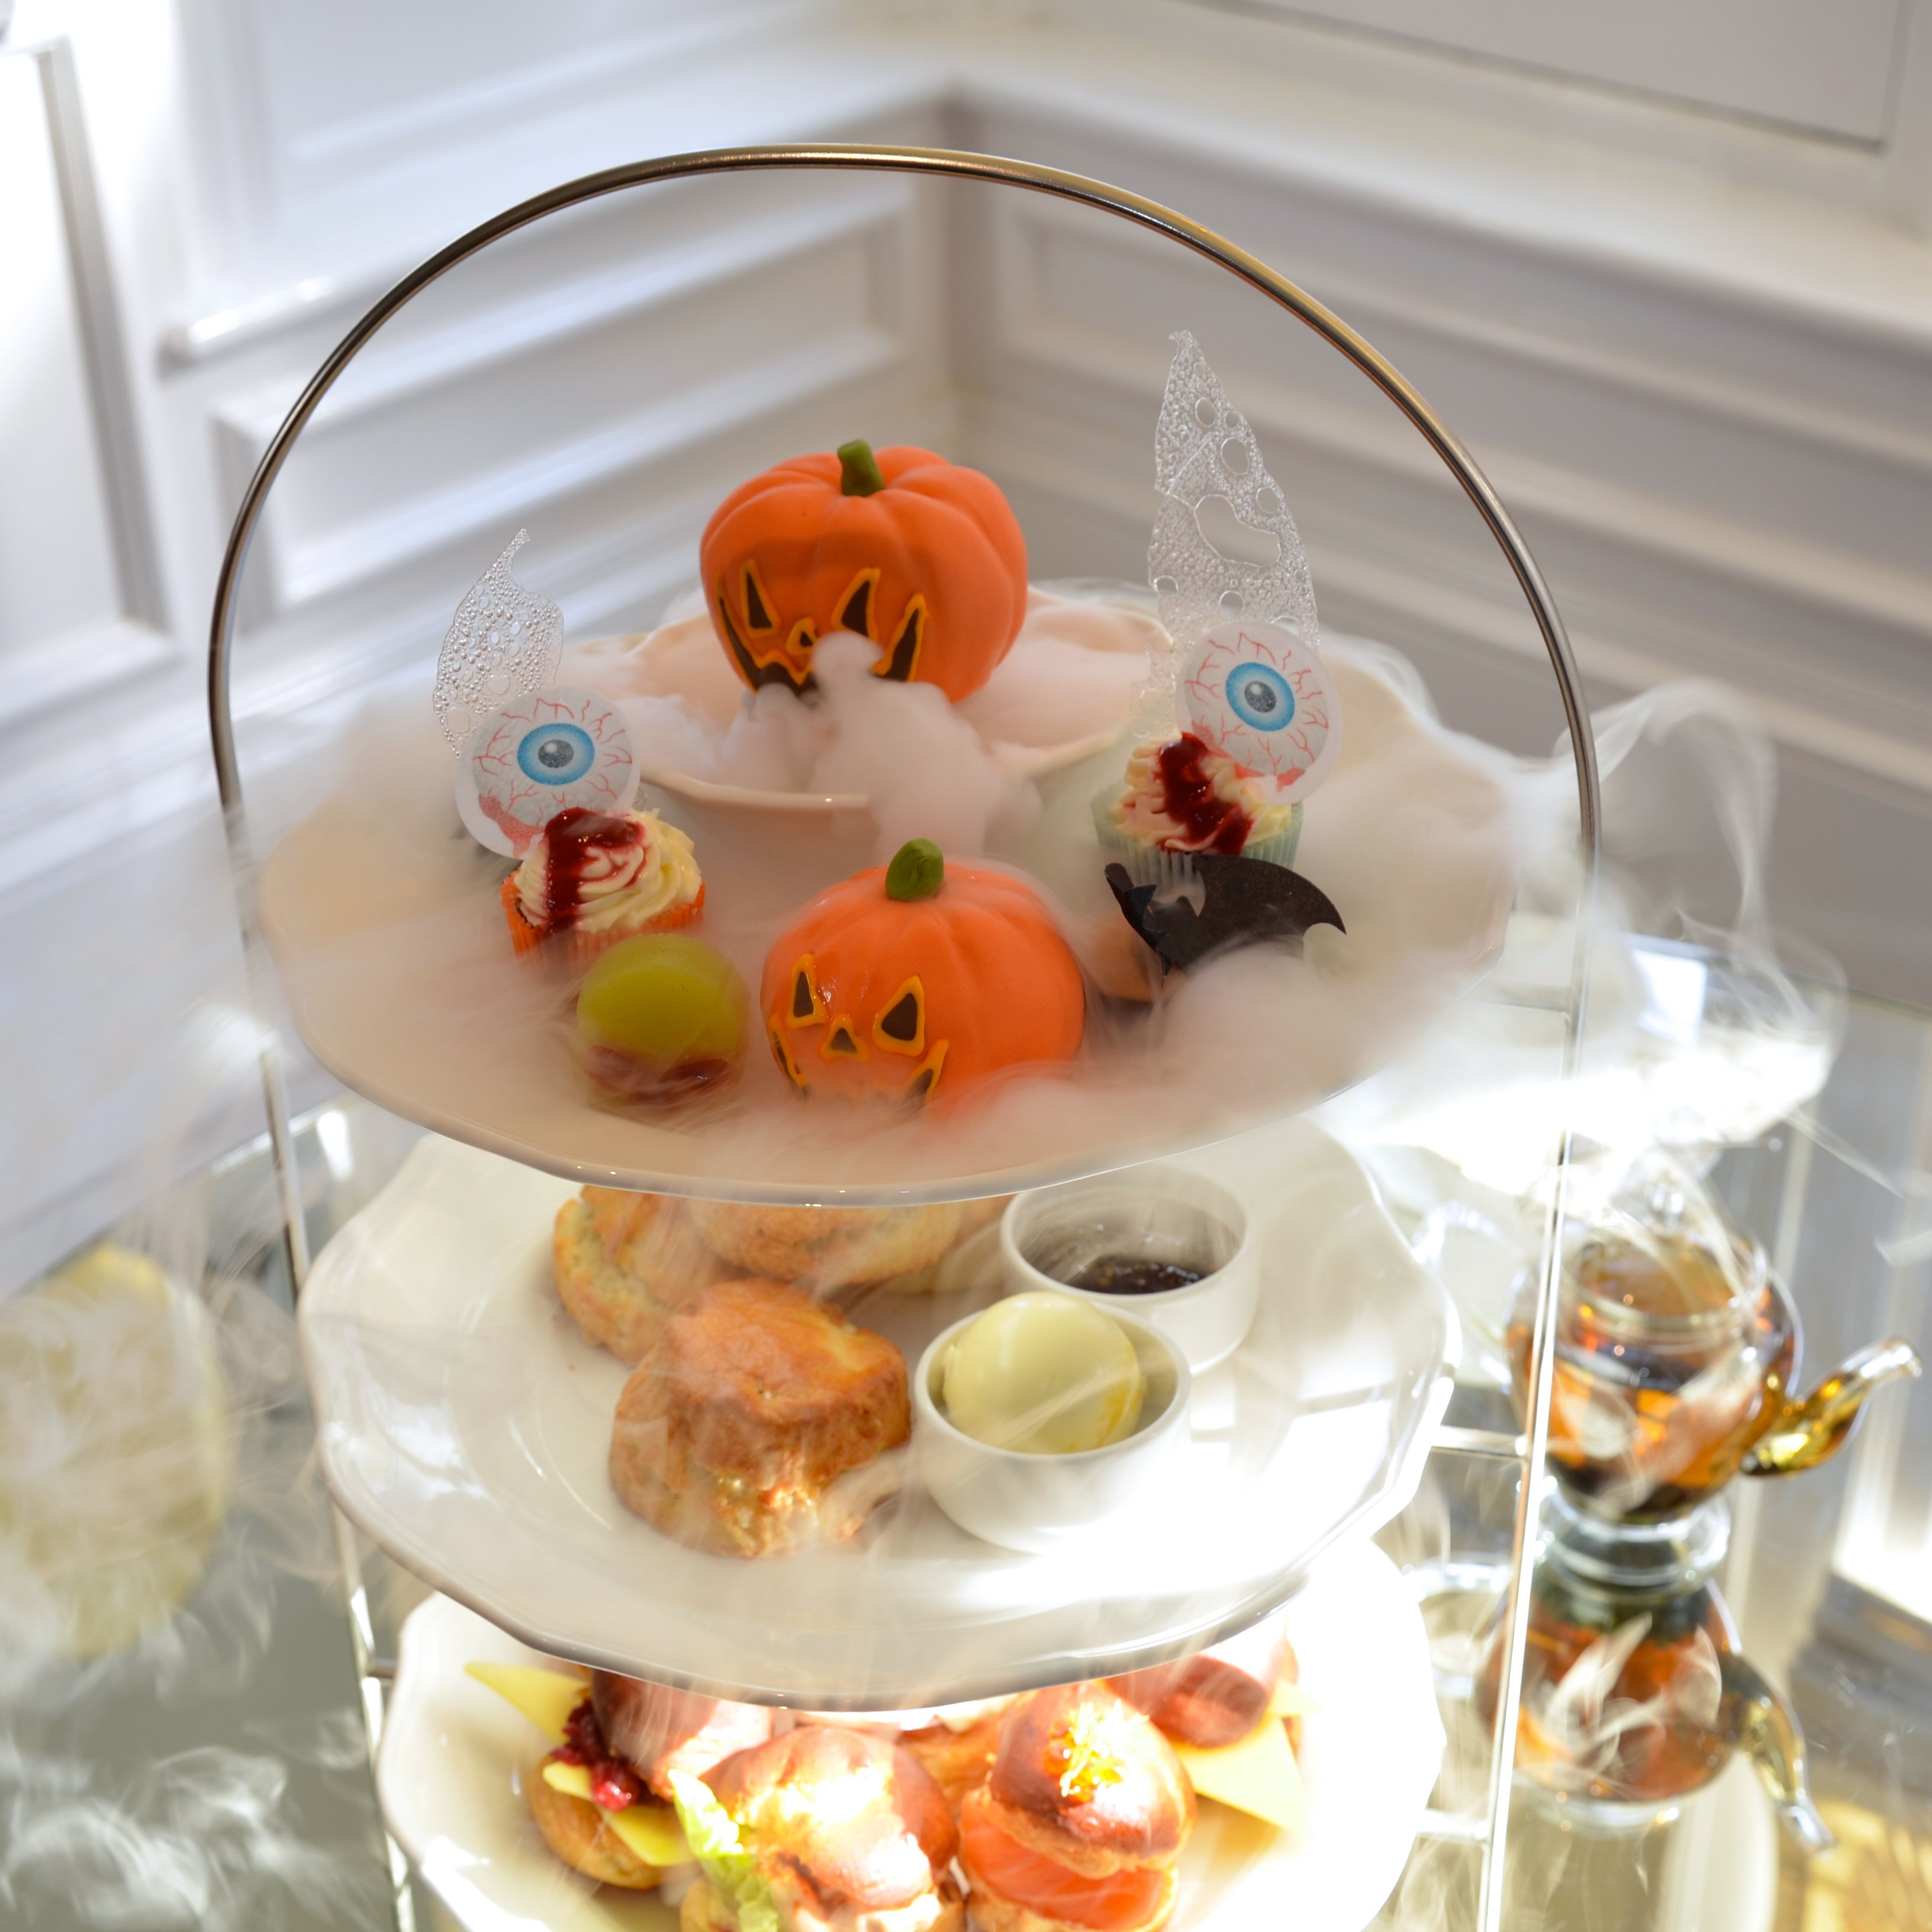 Halloween Afternoon Tea At The Ampersand Hotel, Kensington